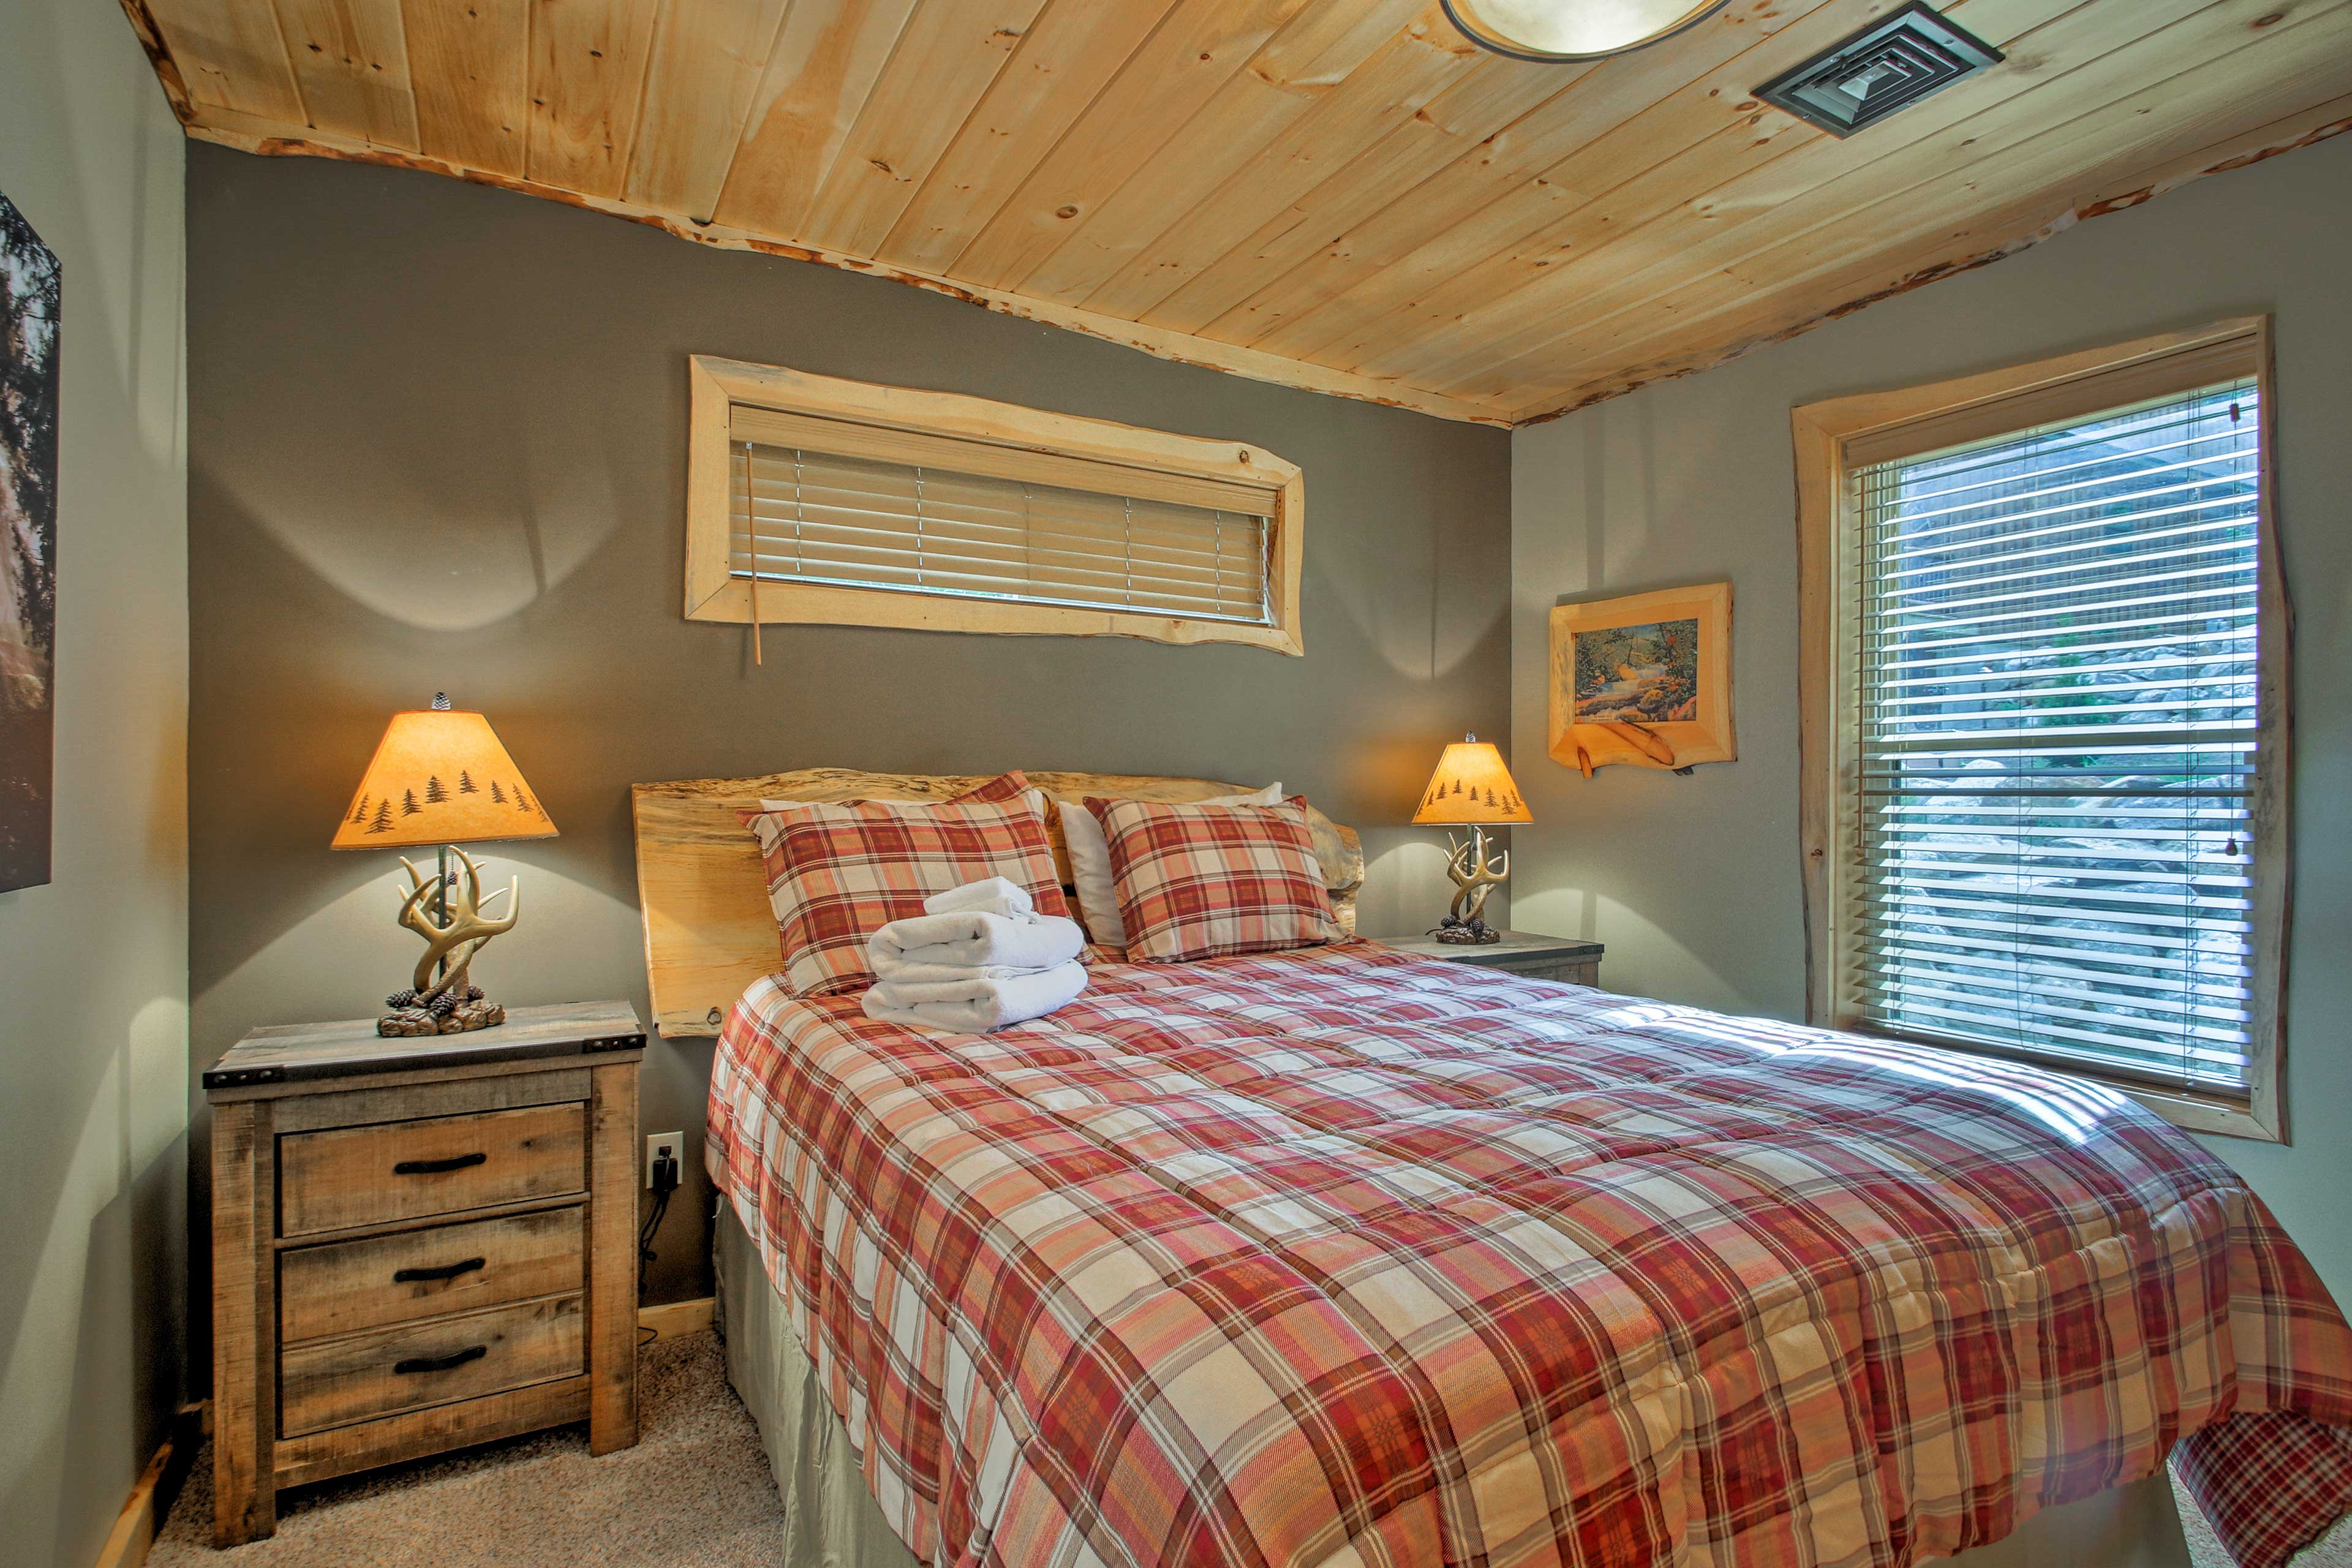 Retreat to the first bedroom for rest and relaxation.